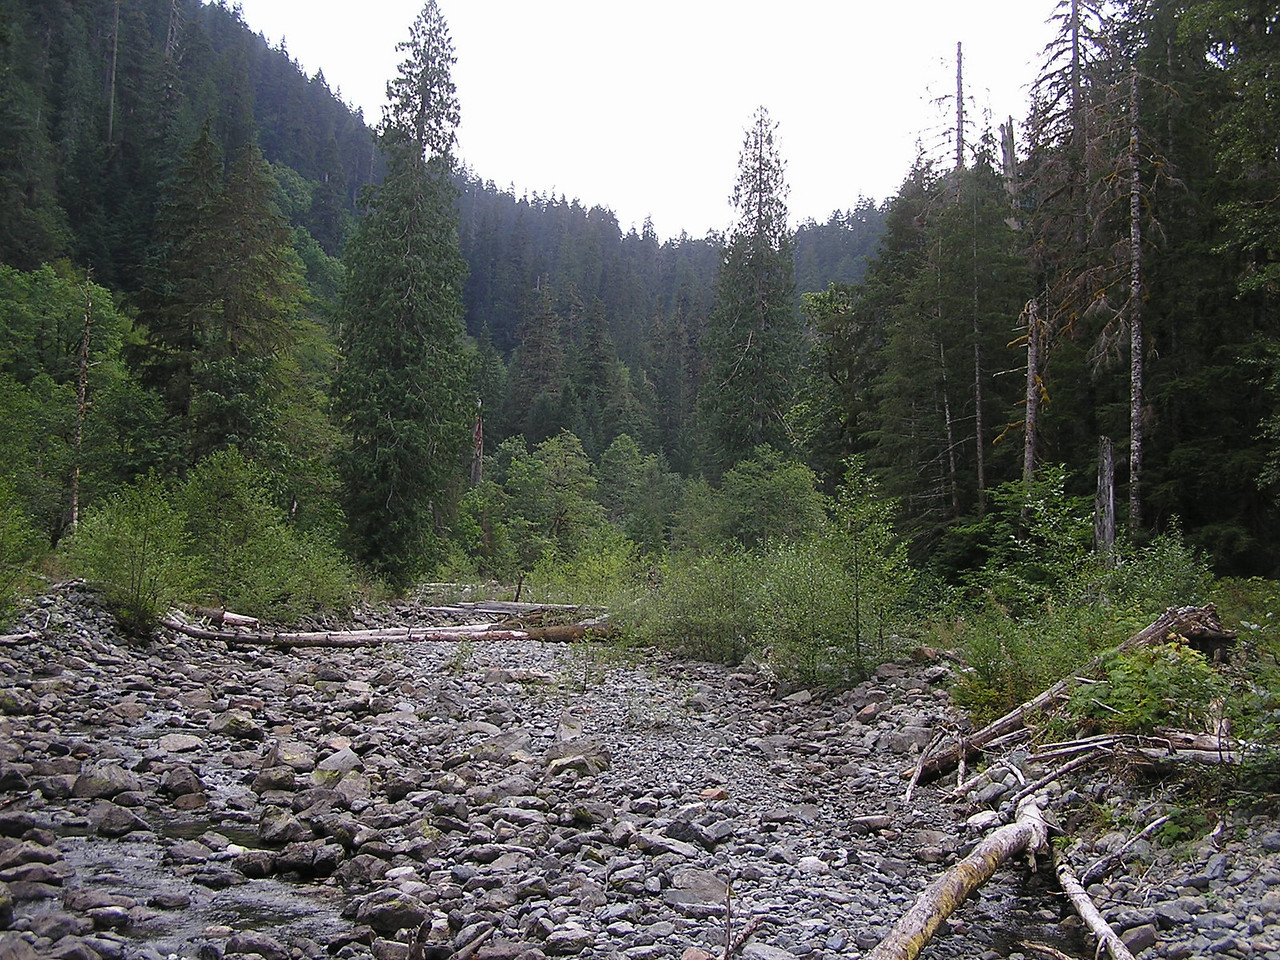 04-08-16 Hike to Trout Lake 043